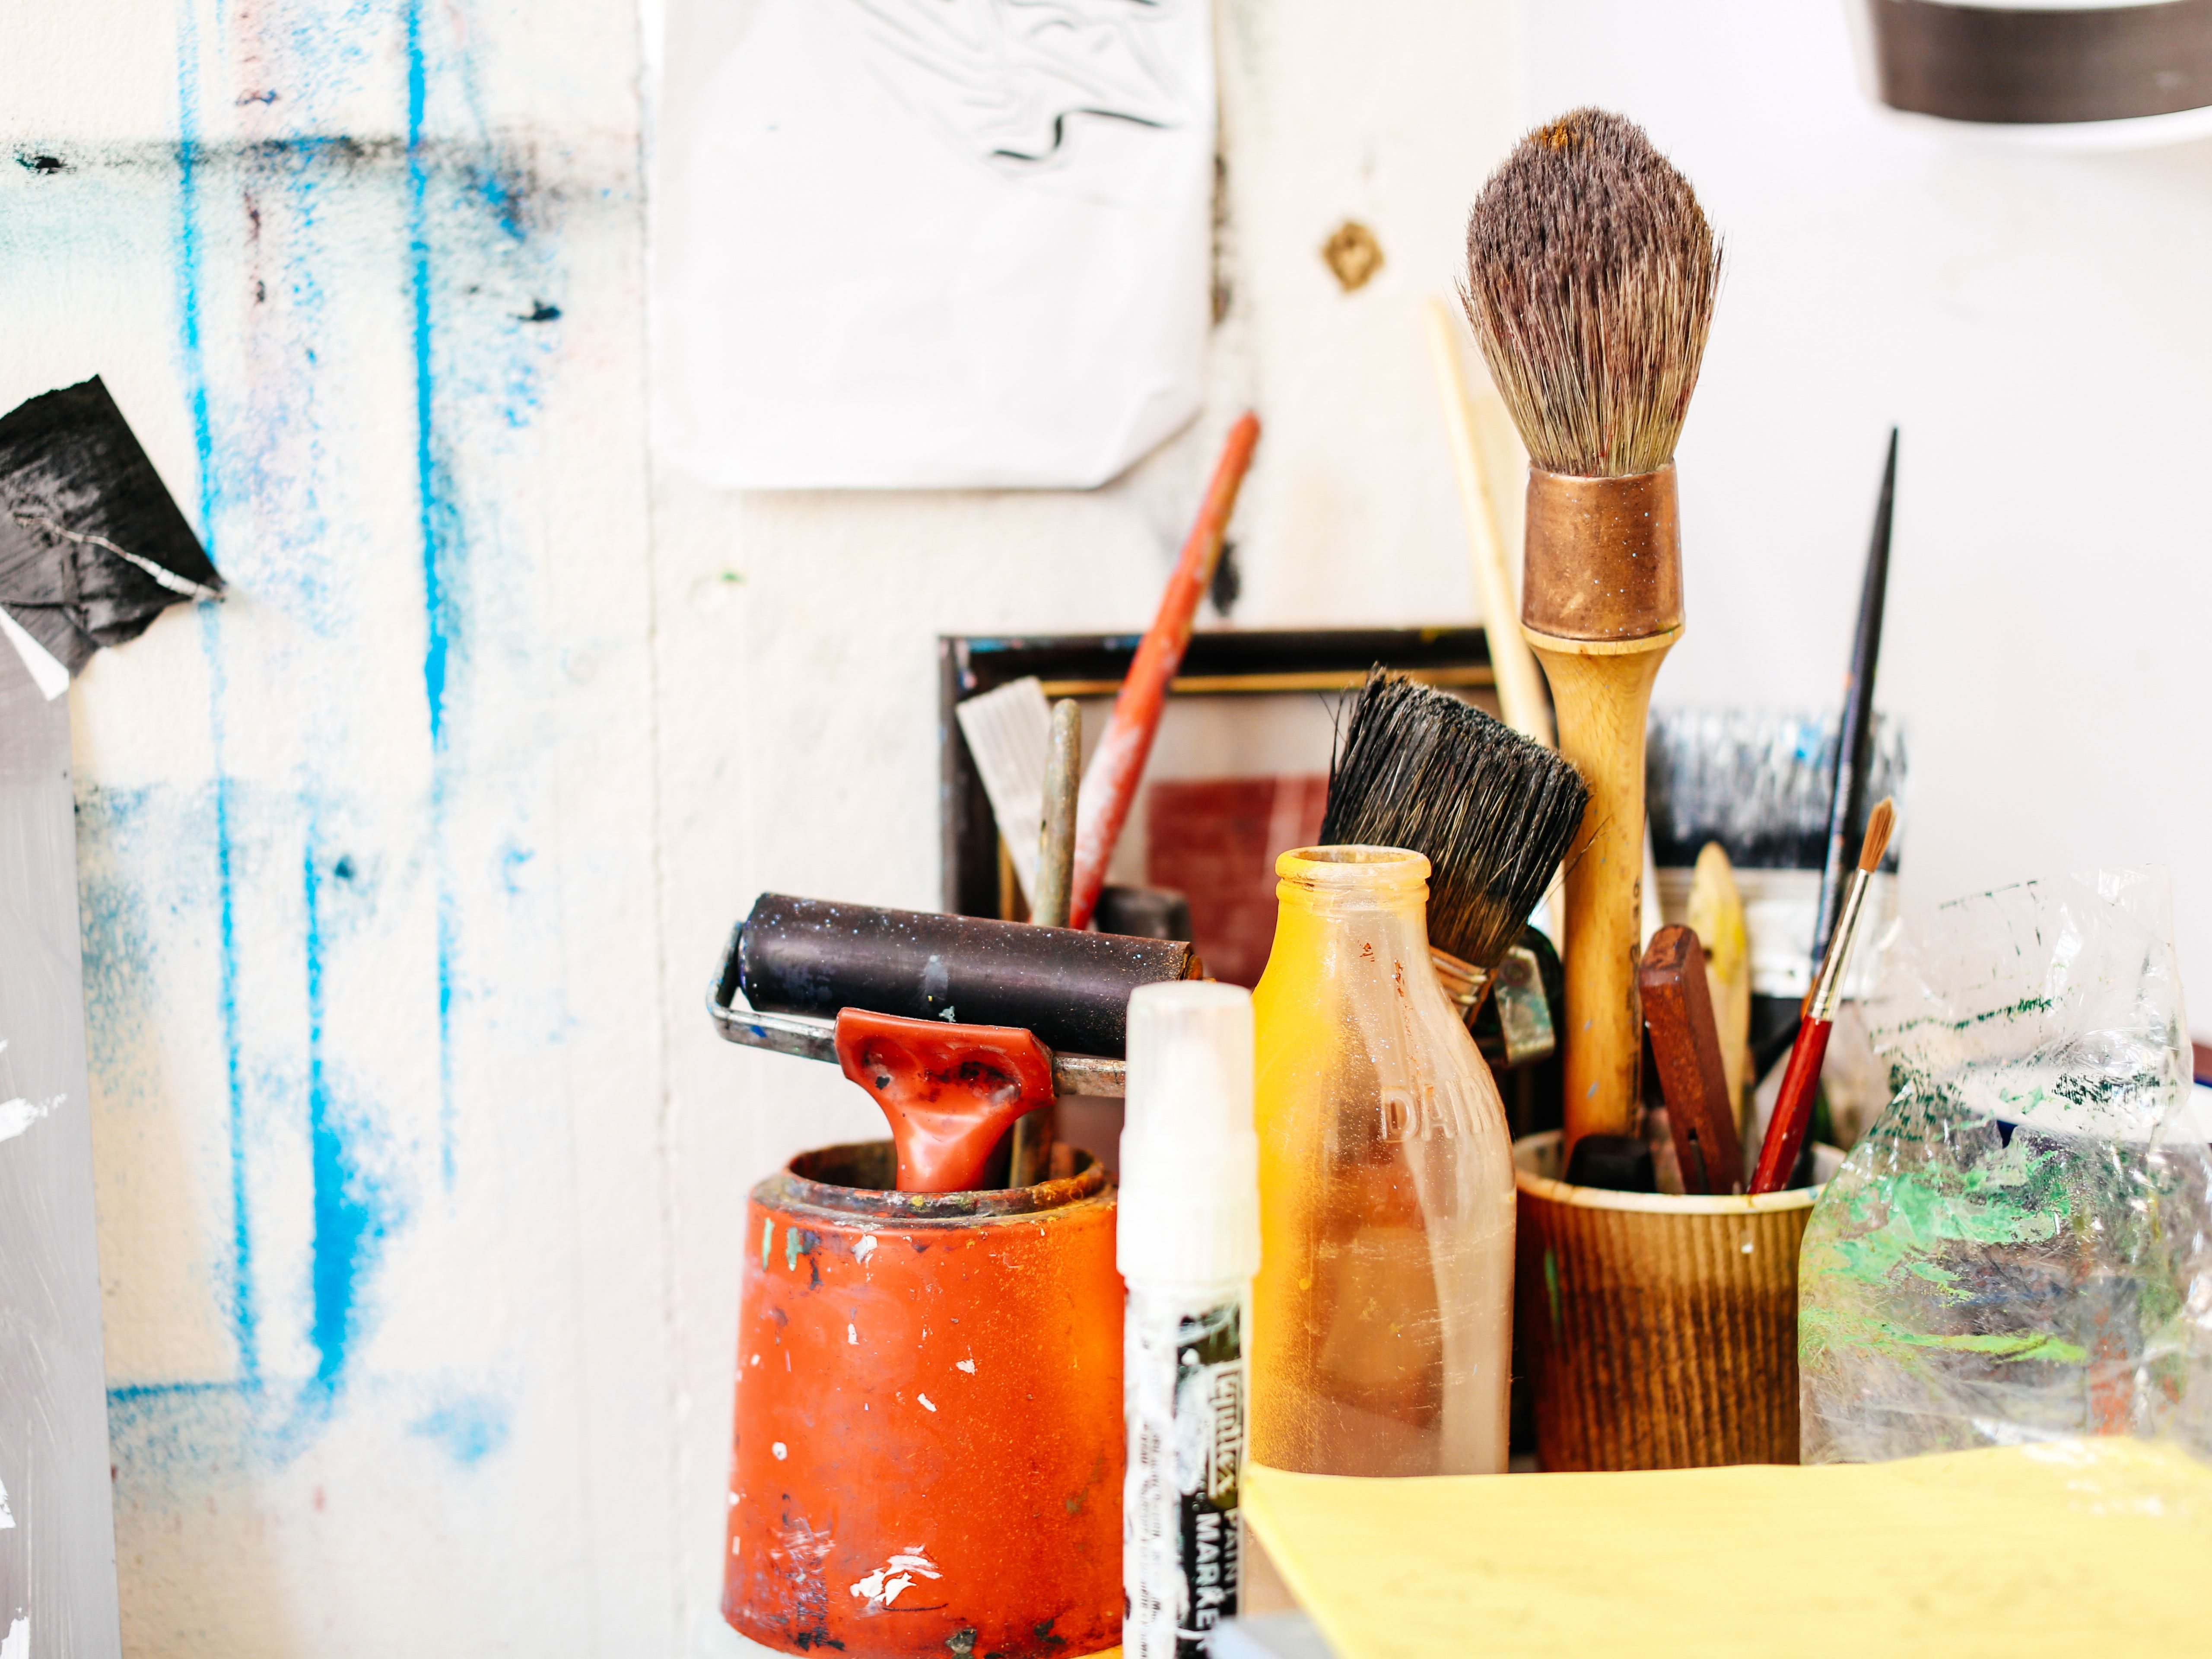 Collection of art tools and materials including paint and paintbrushes